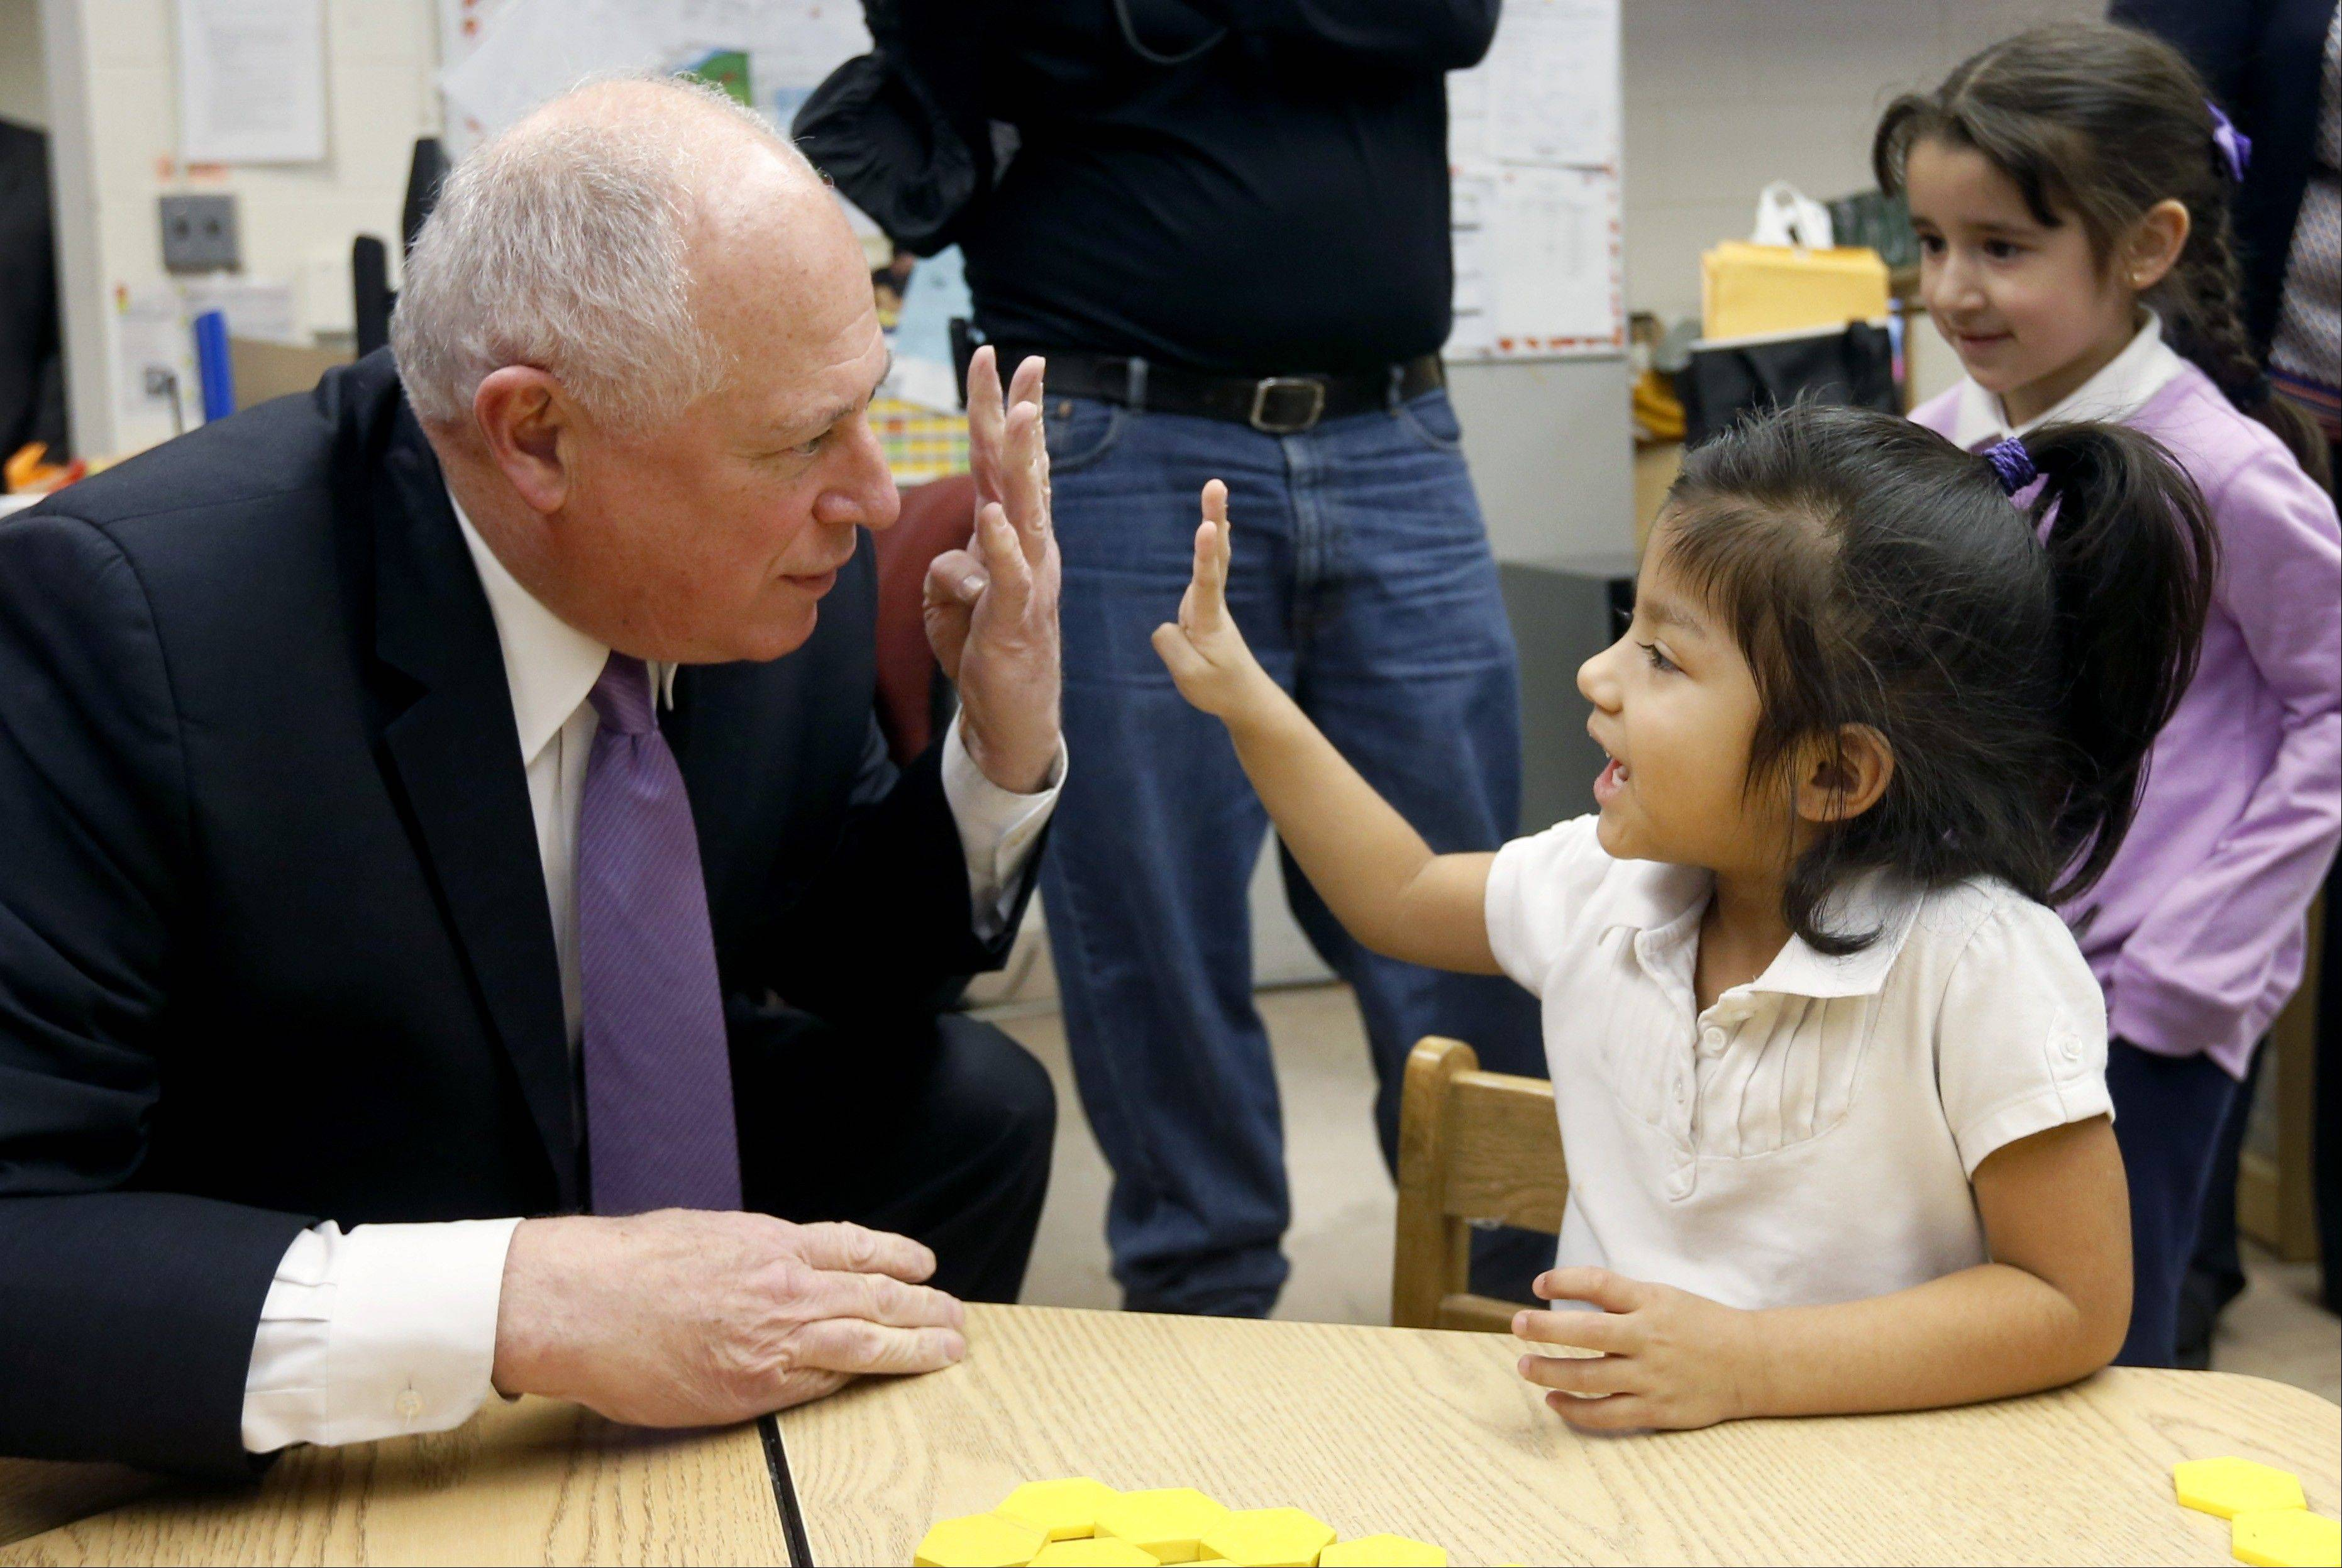 Gov. Pat Quinn asks Anna Munoz her age as she replies enthusiastically, 4, on Thursday at the Edwards Center for Young Learners in Chicago.